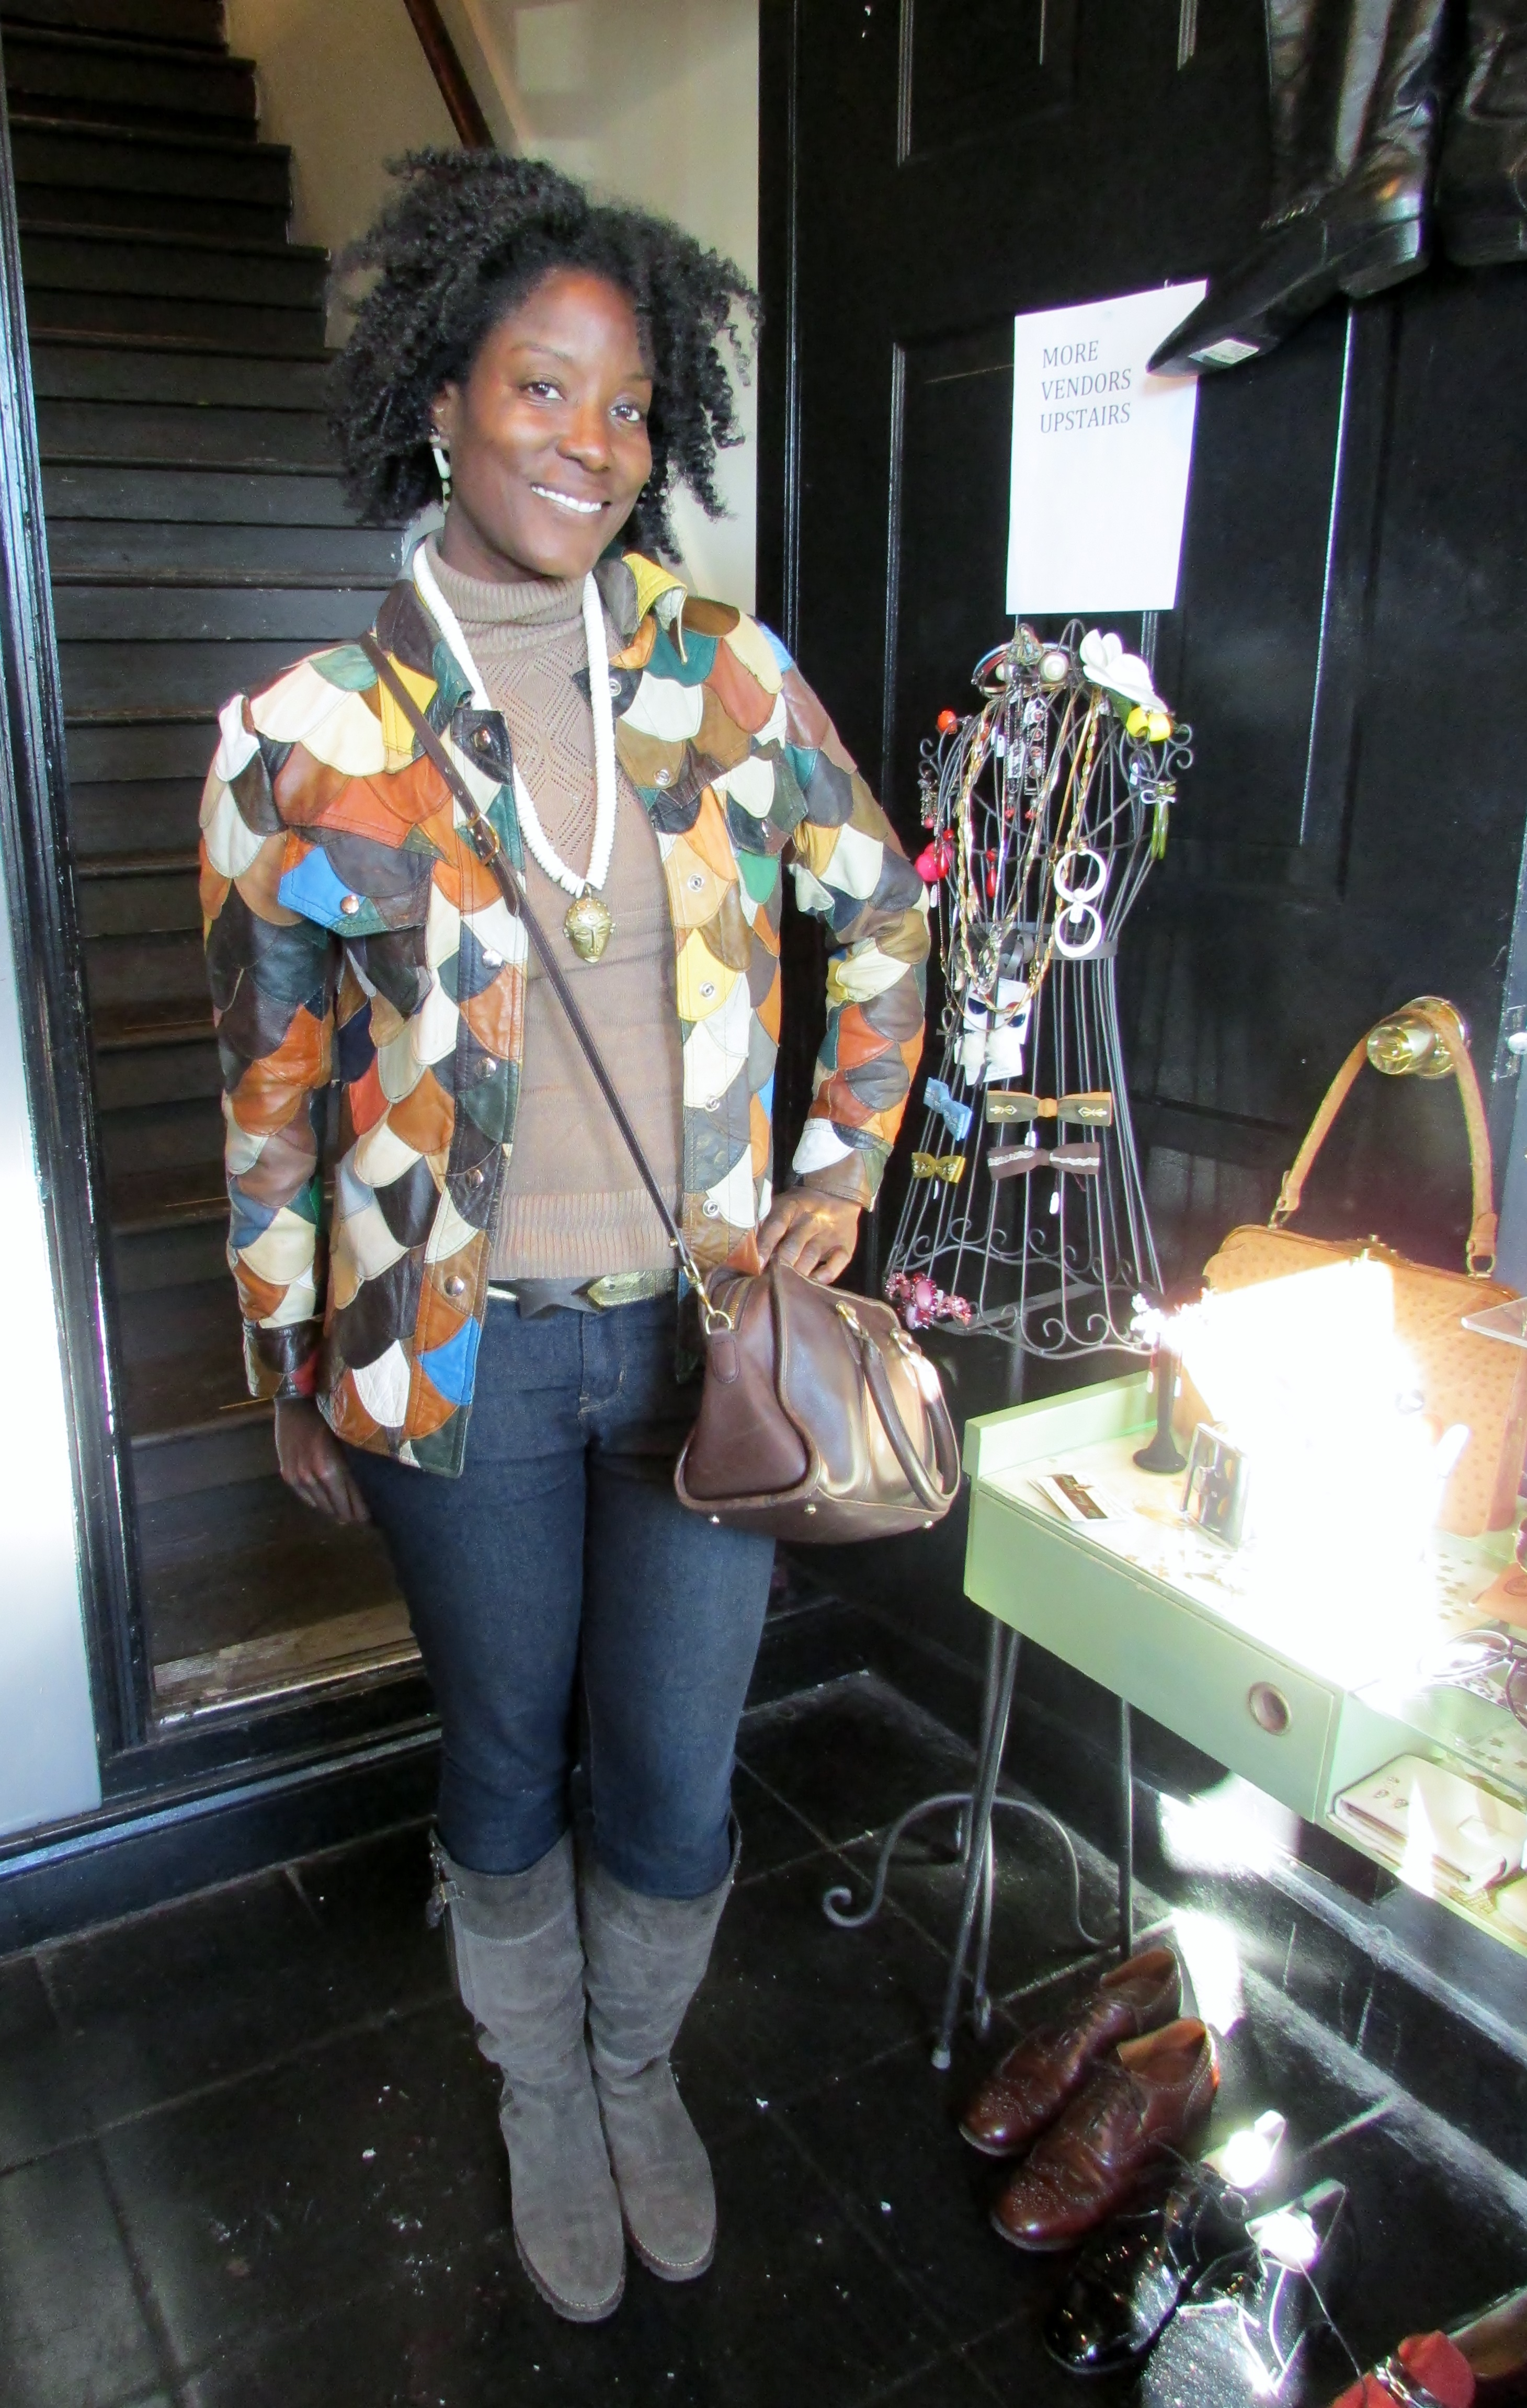 Her jacket! Vintage at it's finest. Patchwork leather, ultimate throwback!